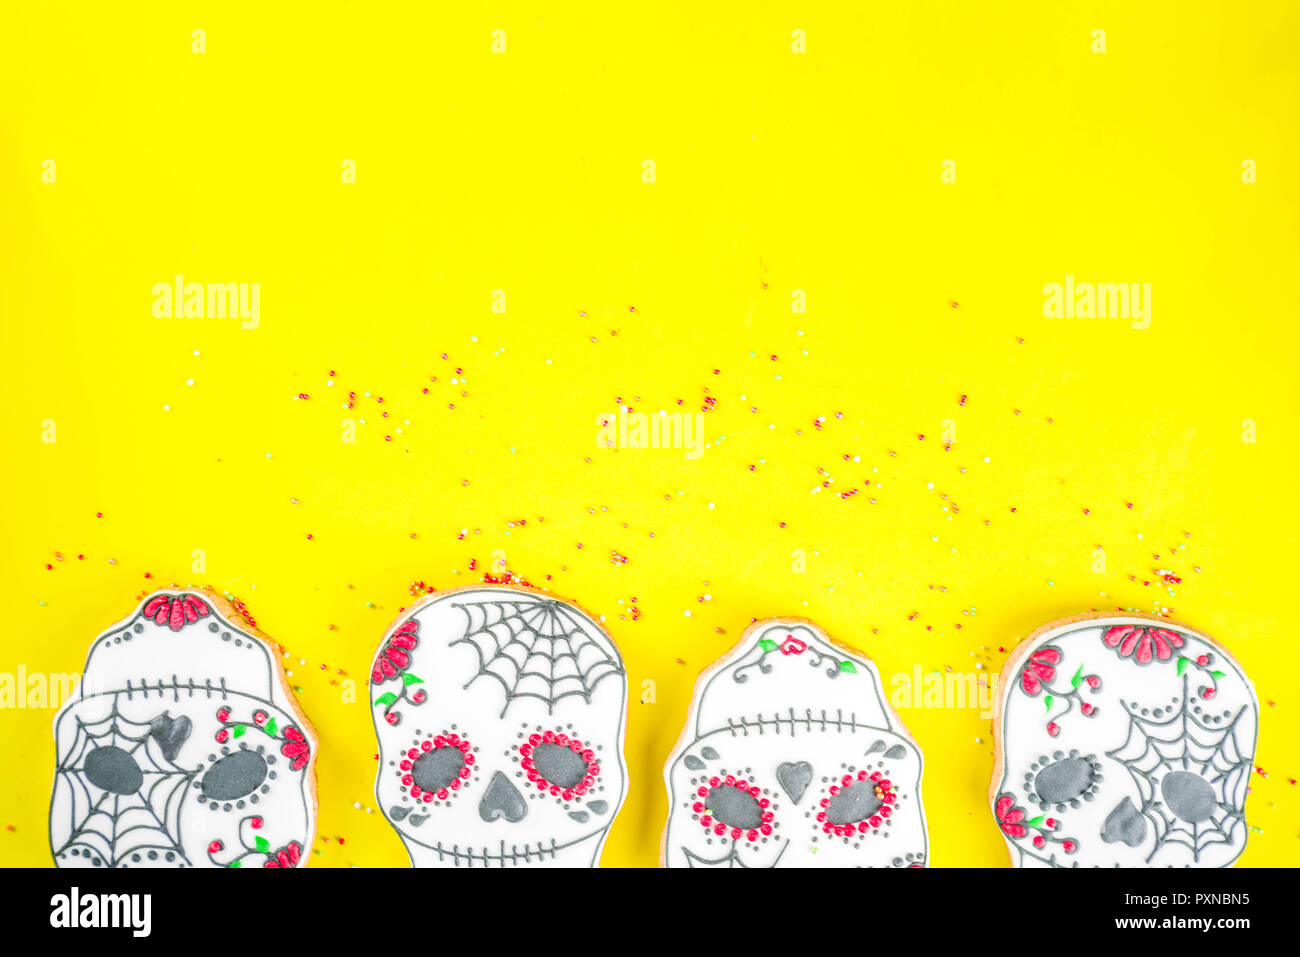 Dia De Los Muertos Mexican Day Of The Dead Or Halloween Greeting Card Background With